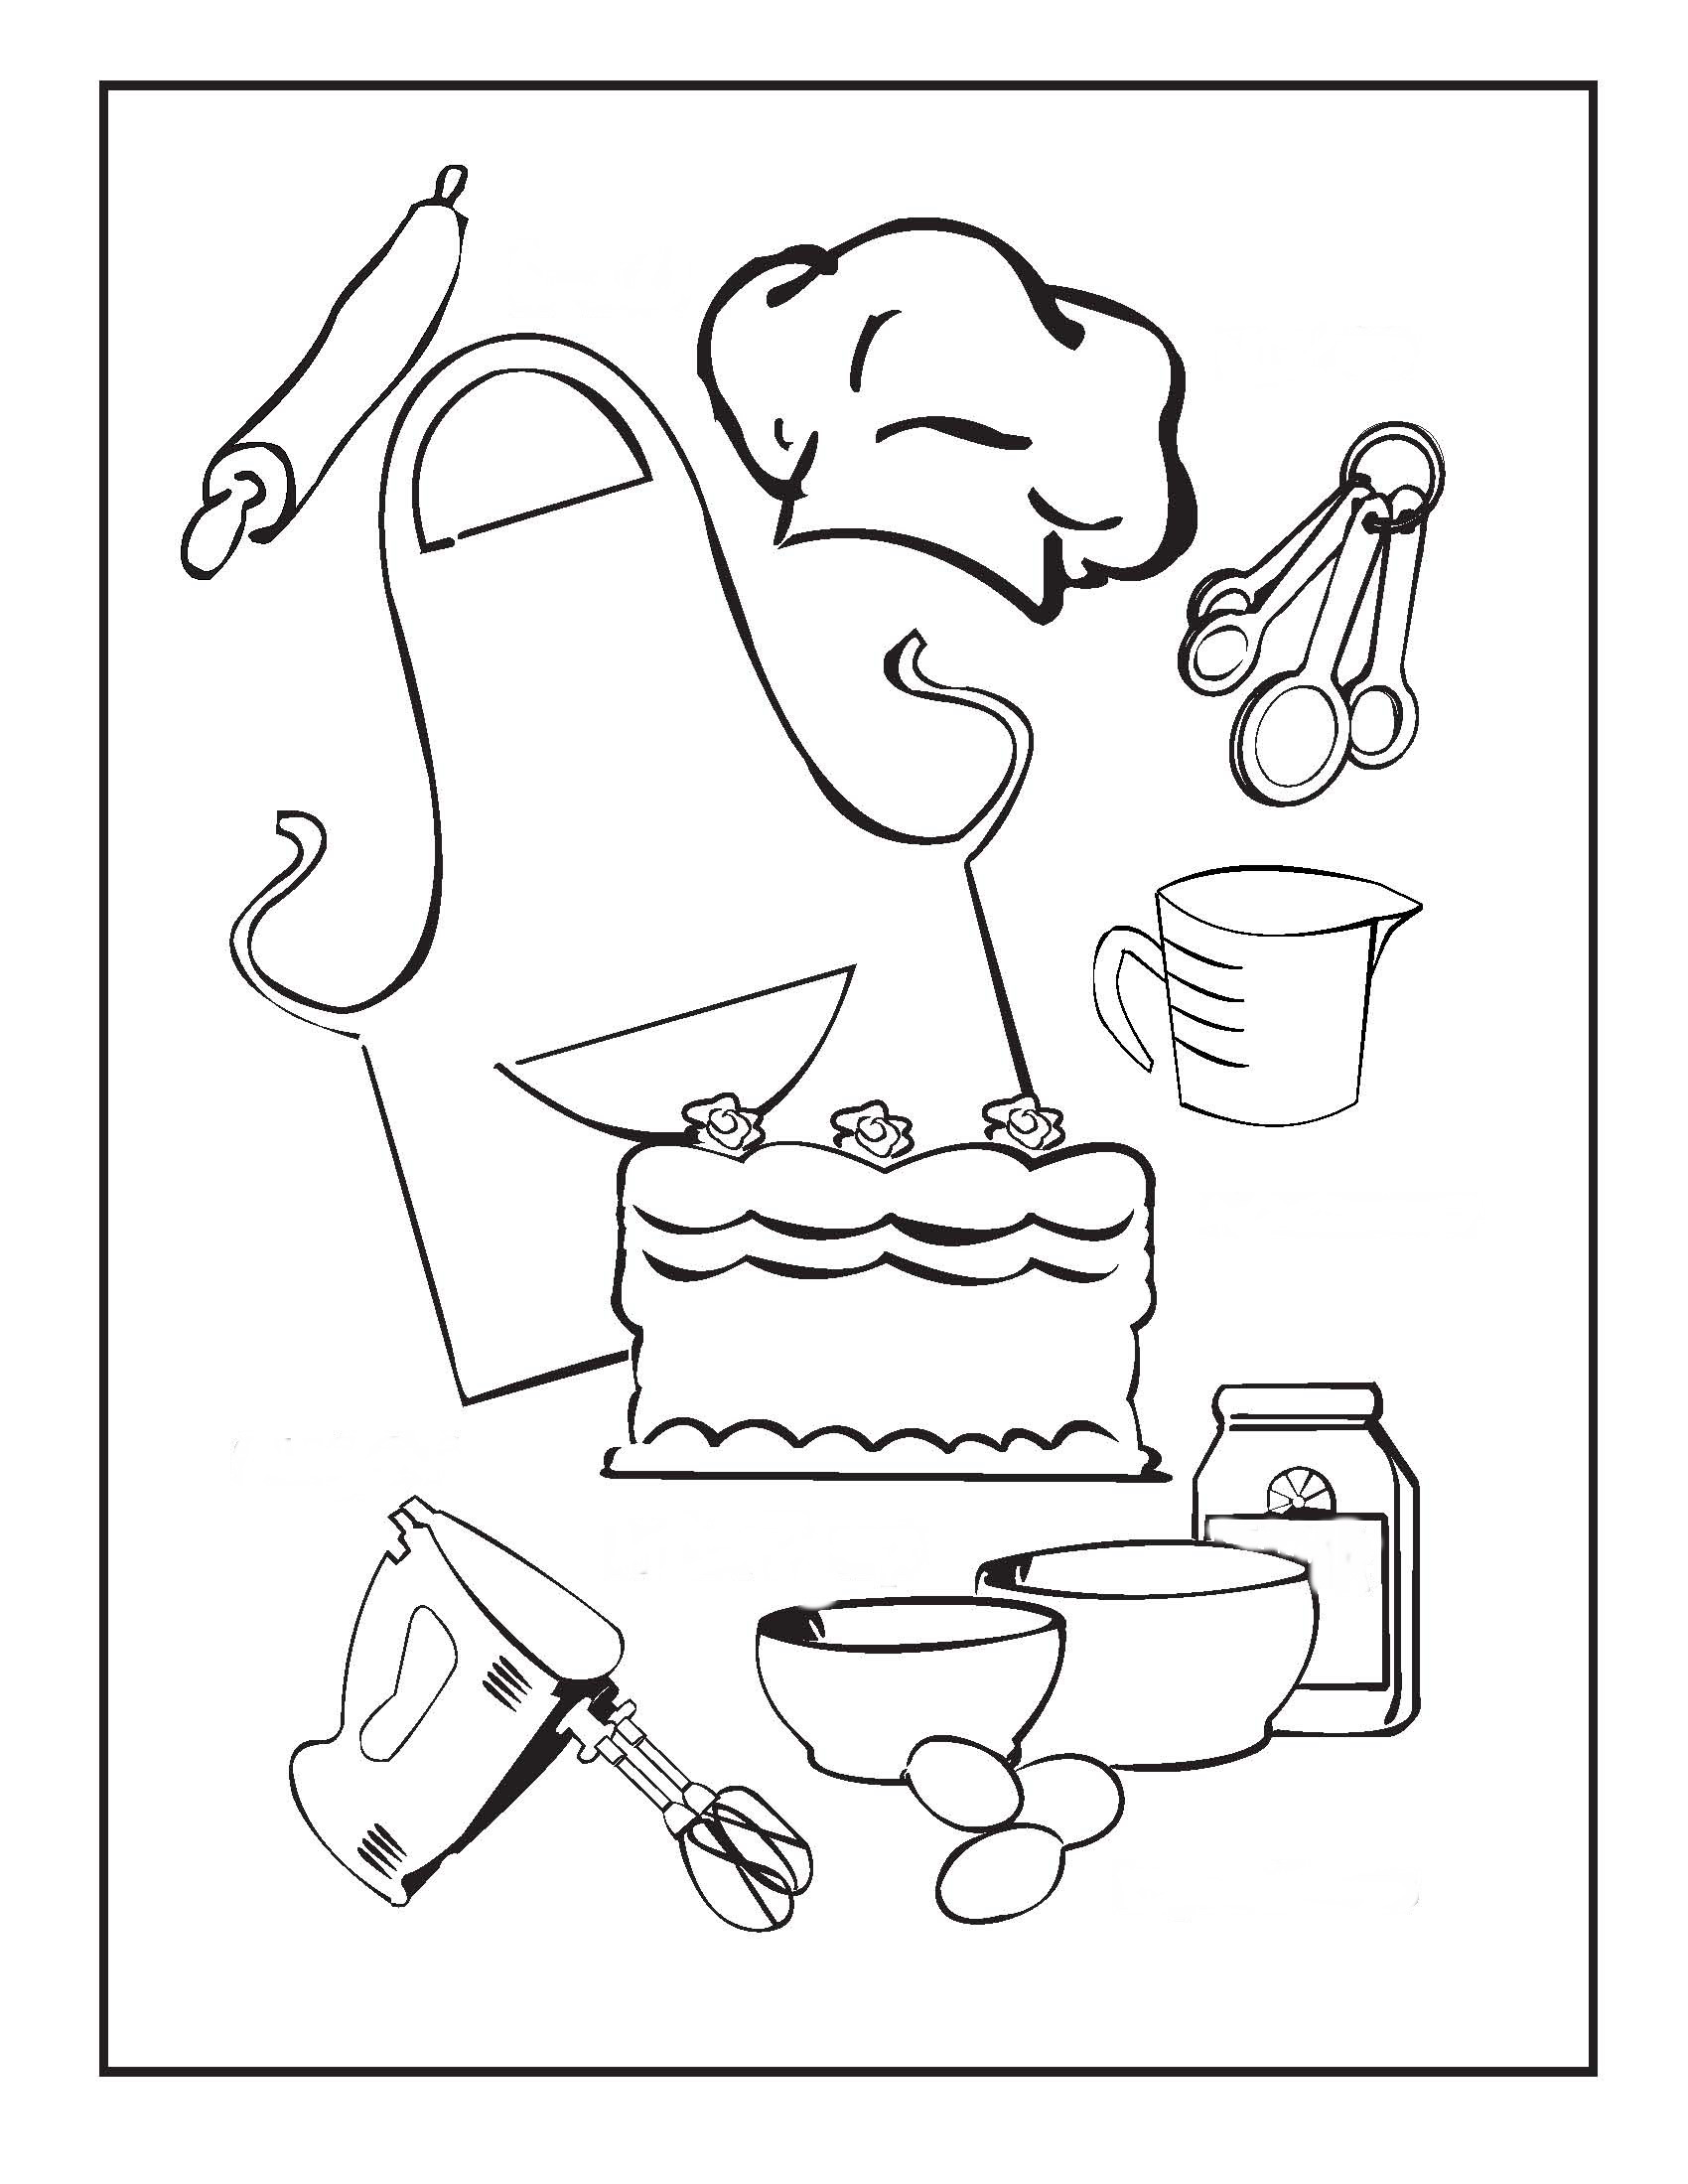 93 ideas Coloring Pages Kitchen Tools on kankanwzcom